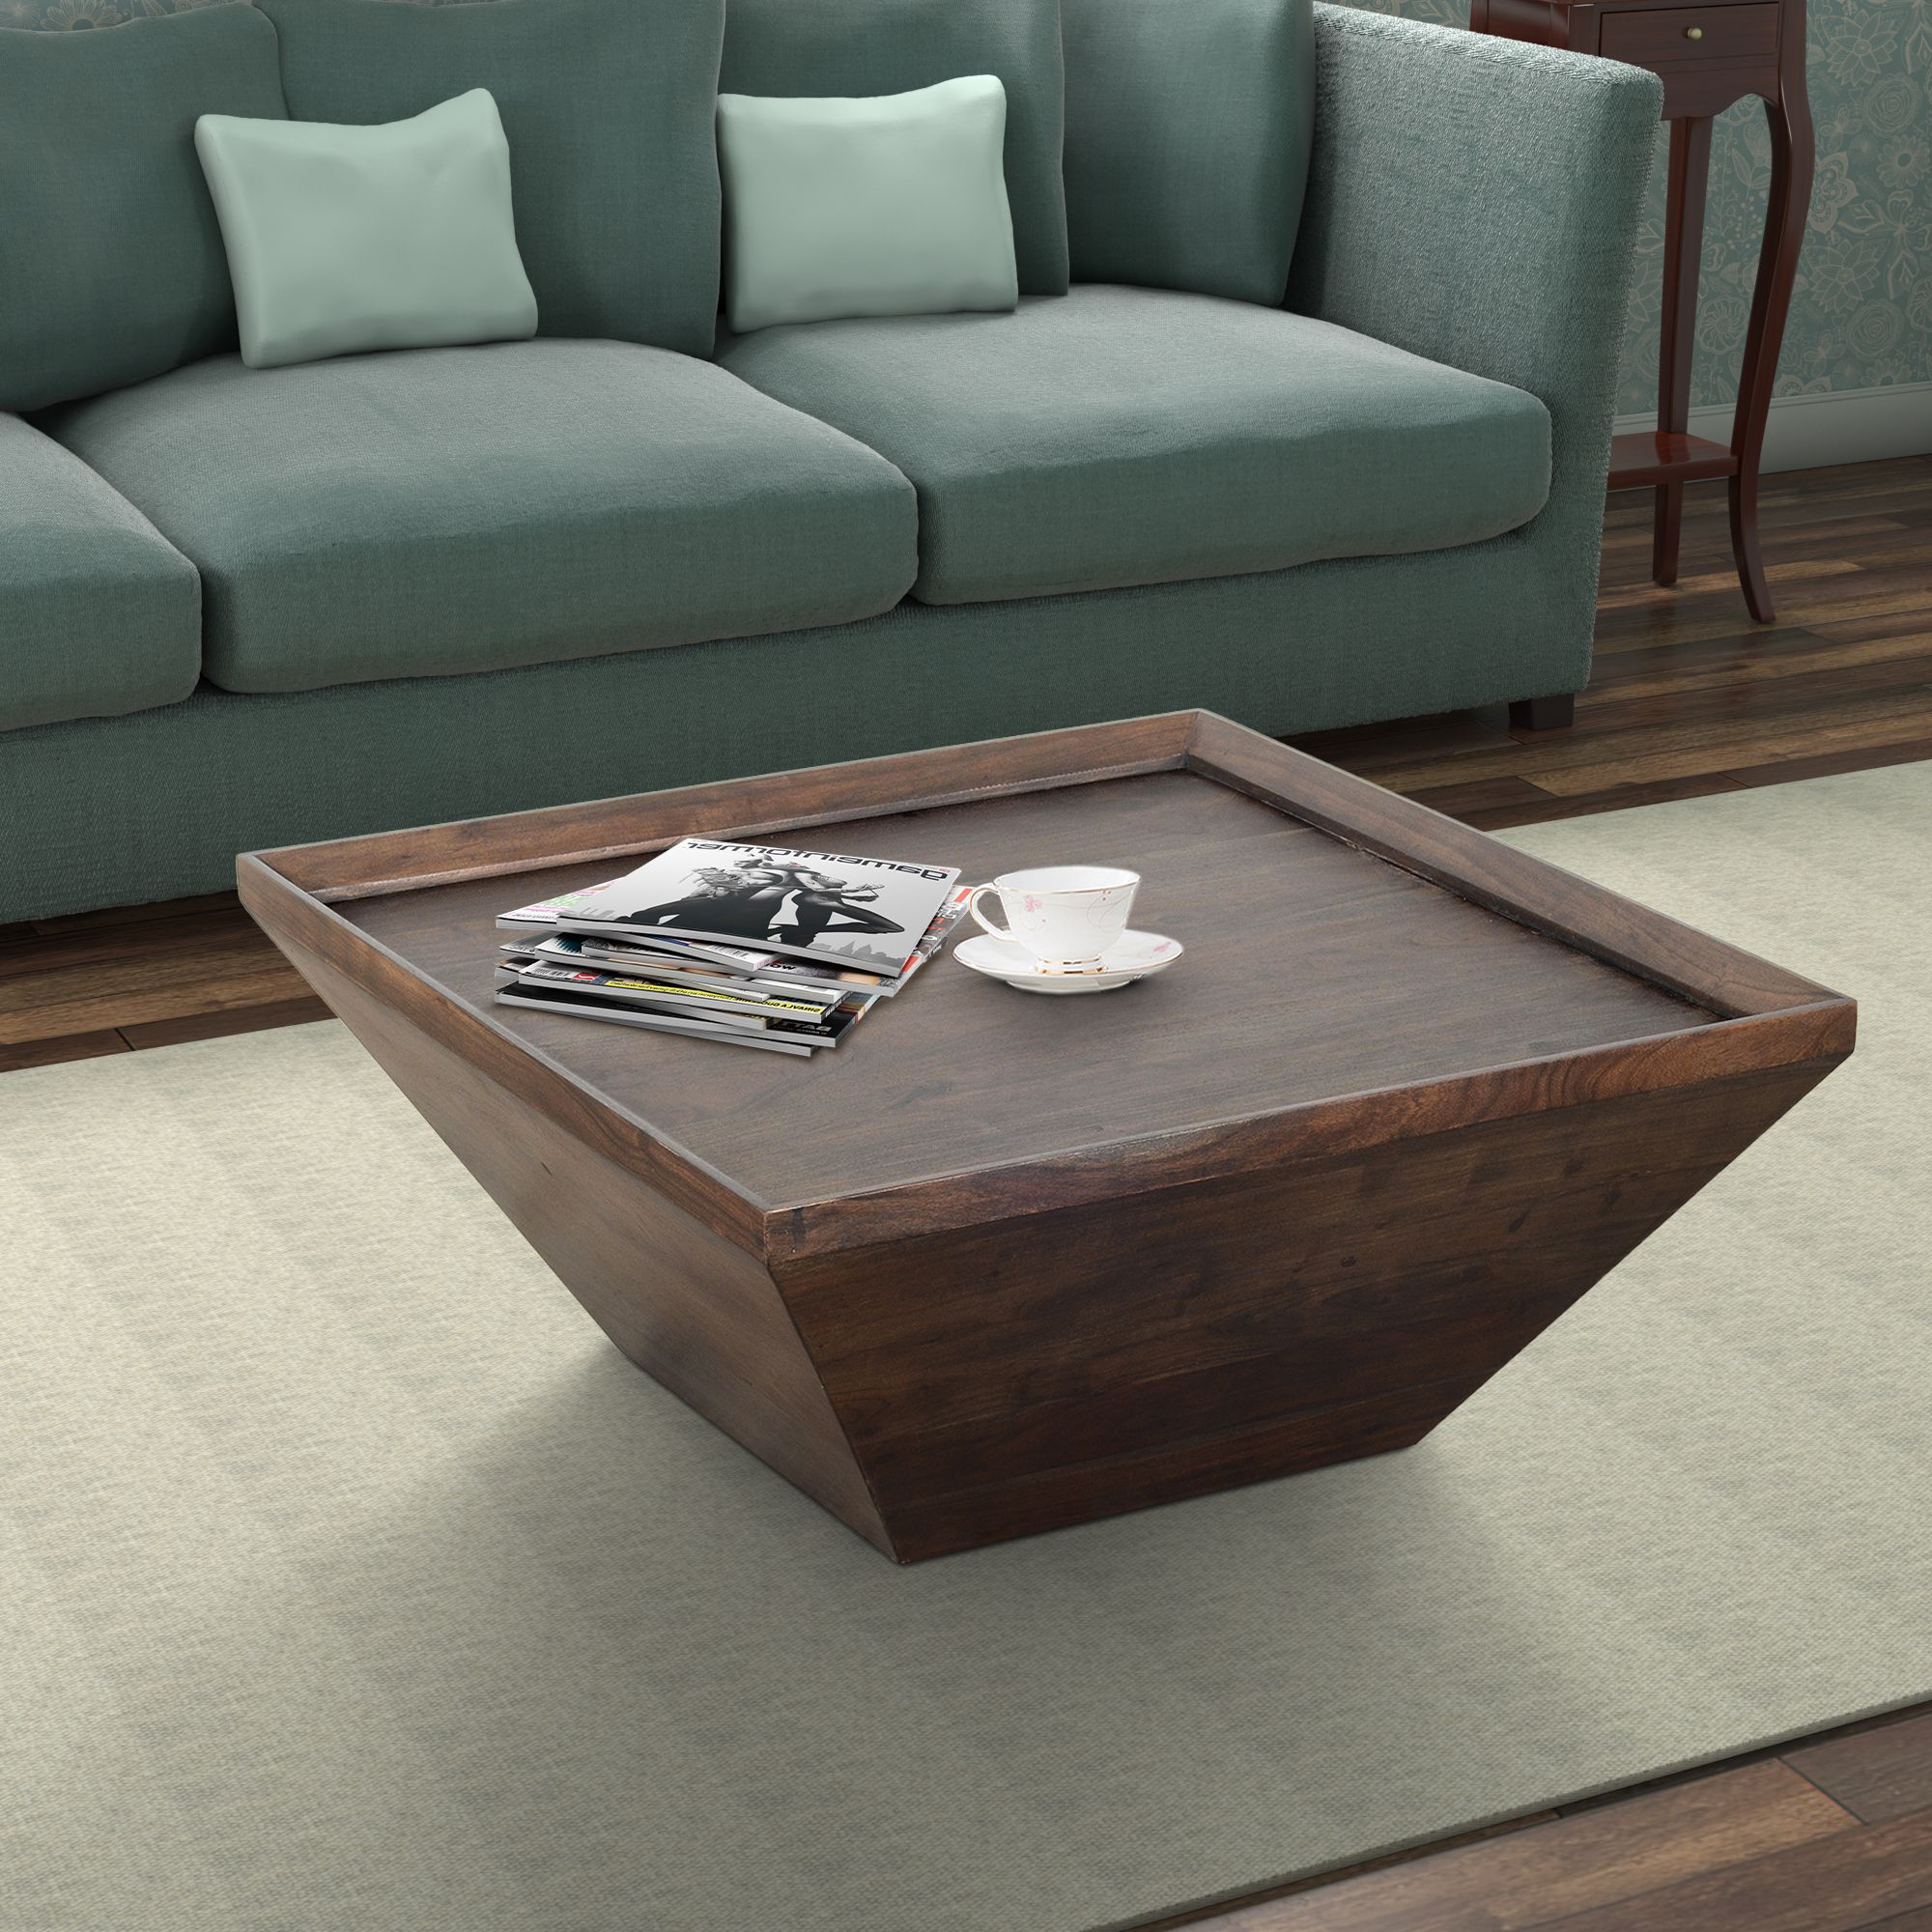 36 Inch Square Shape Acacia Wood Coffee Table With Trapezoid Base Brown Saltoro Sherpi In 2021 Square Wood Coffee Table Coffee Table Wood Handcrafted Coffee Table [ 2000 x 2000 Pixel ]